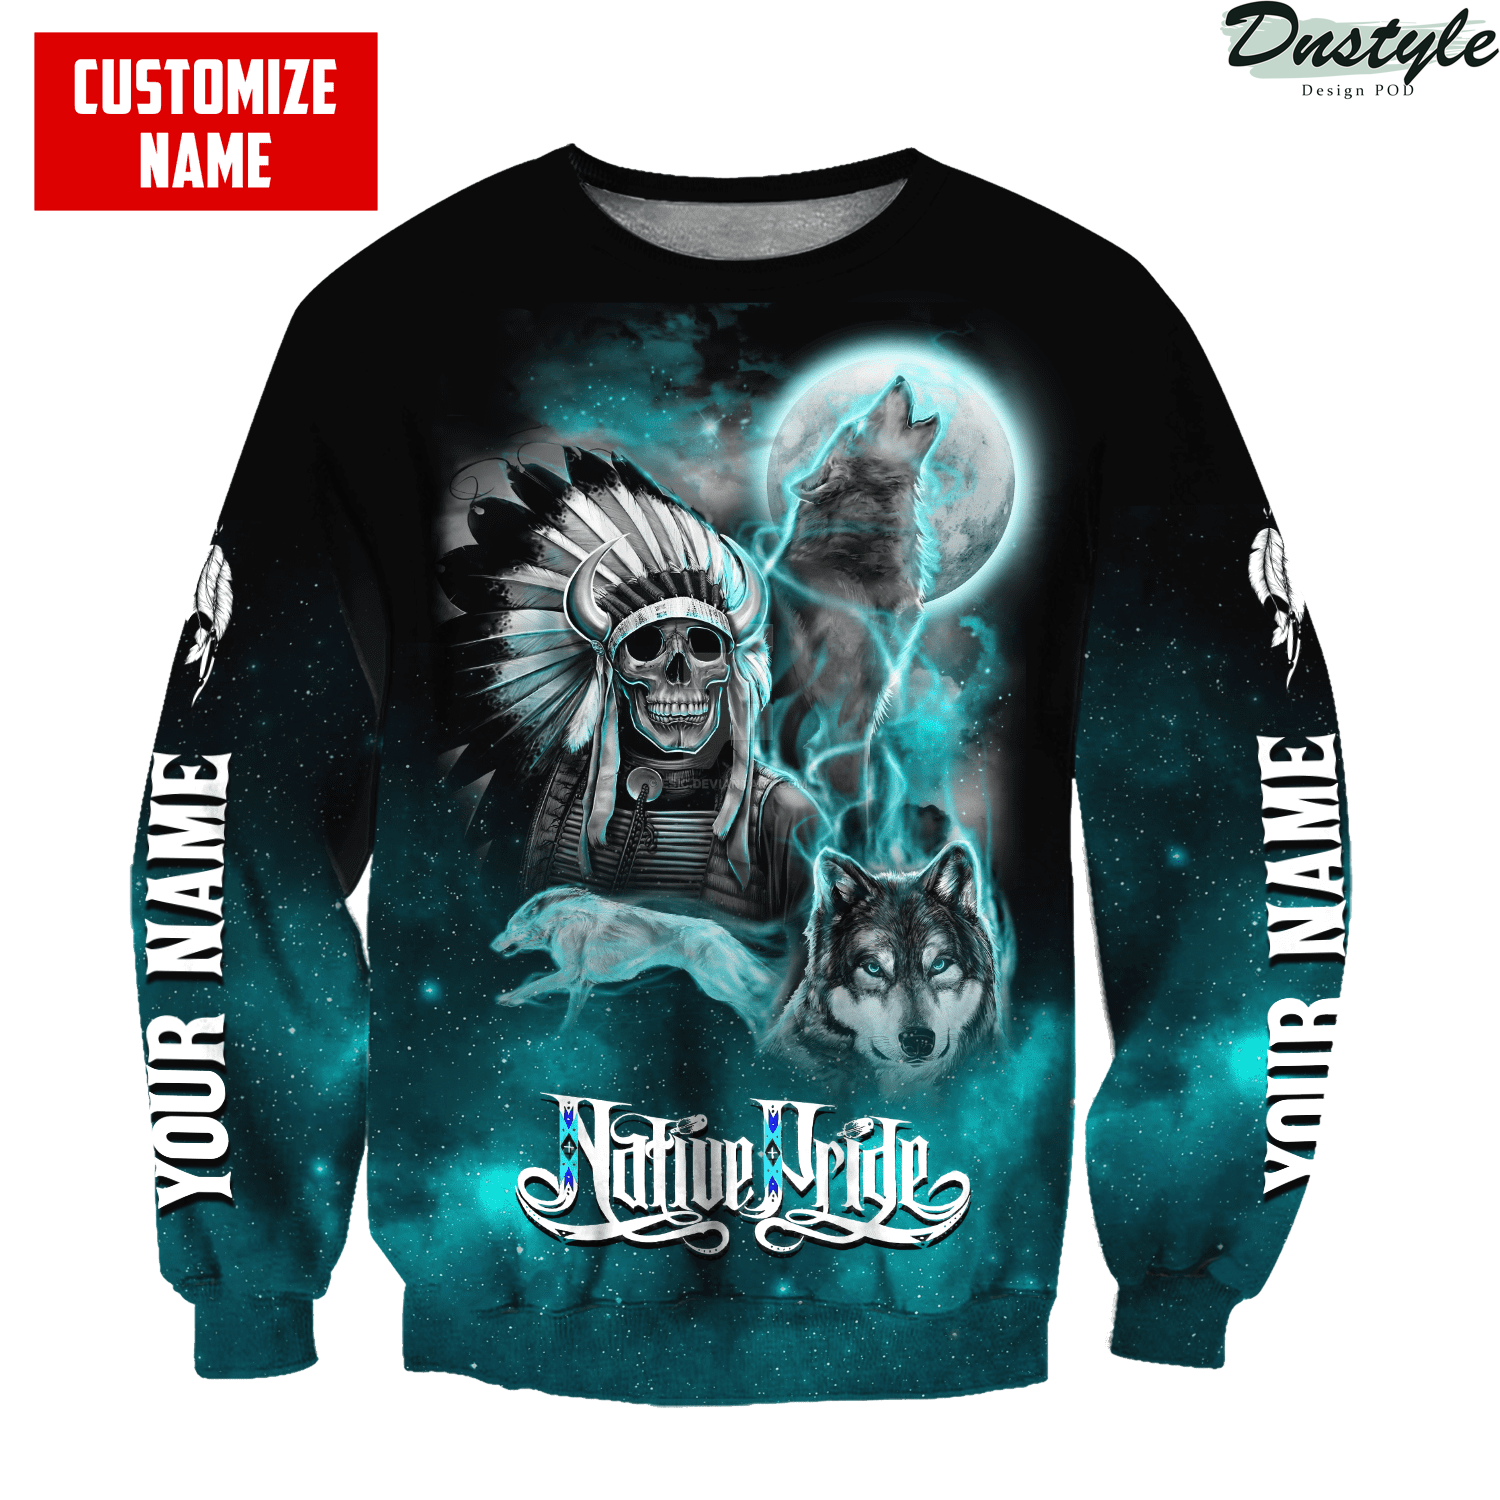 Personalized skull and wolf smoke pattern native pride 3d printed hoodie 2